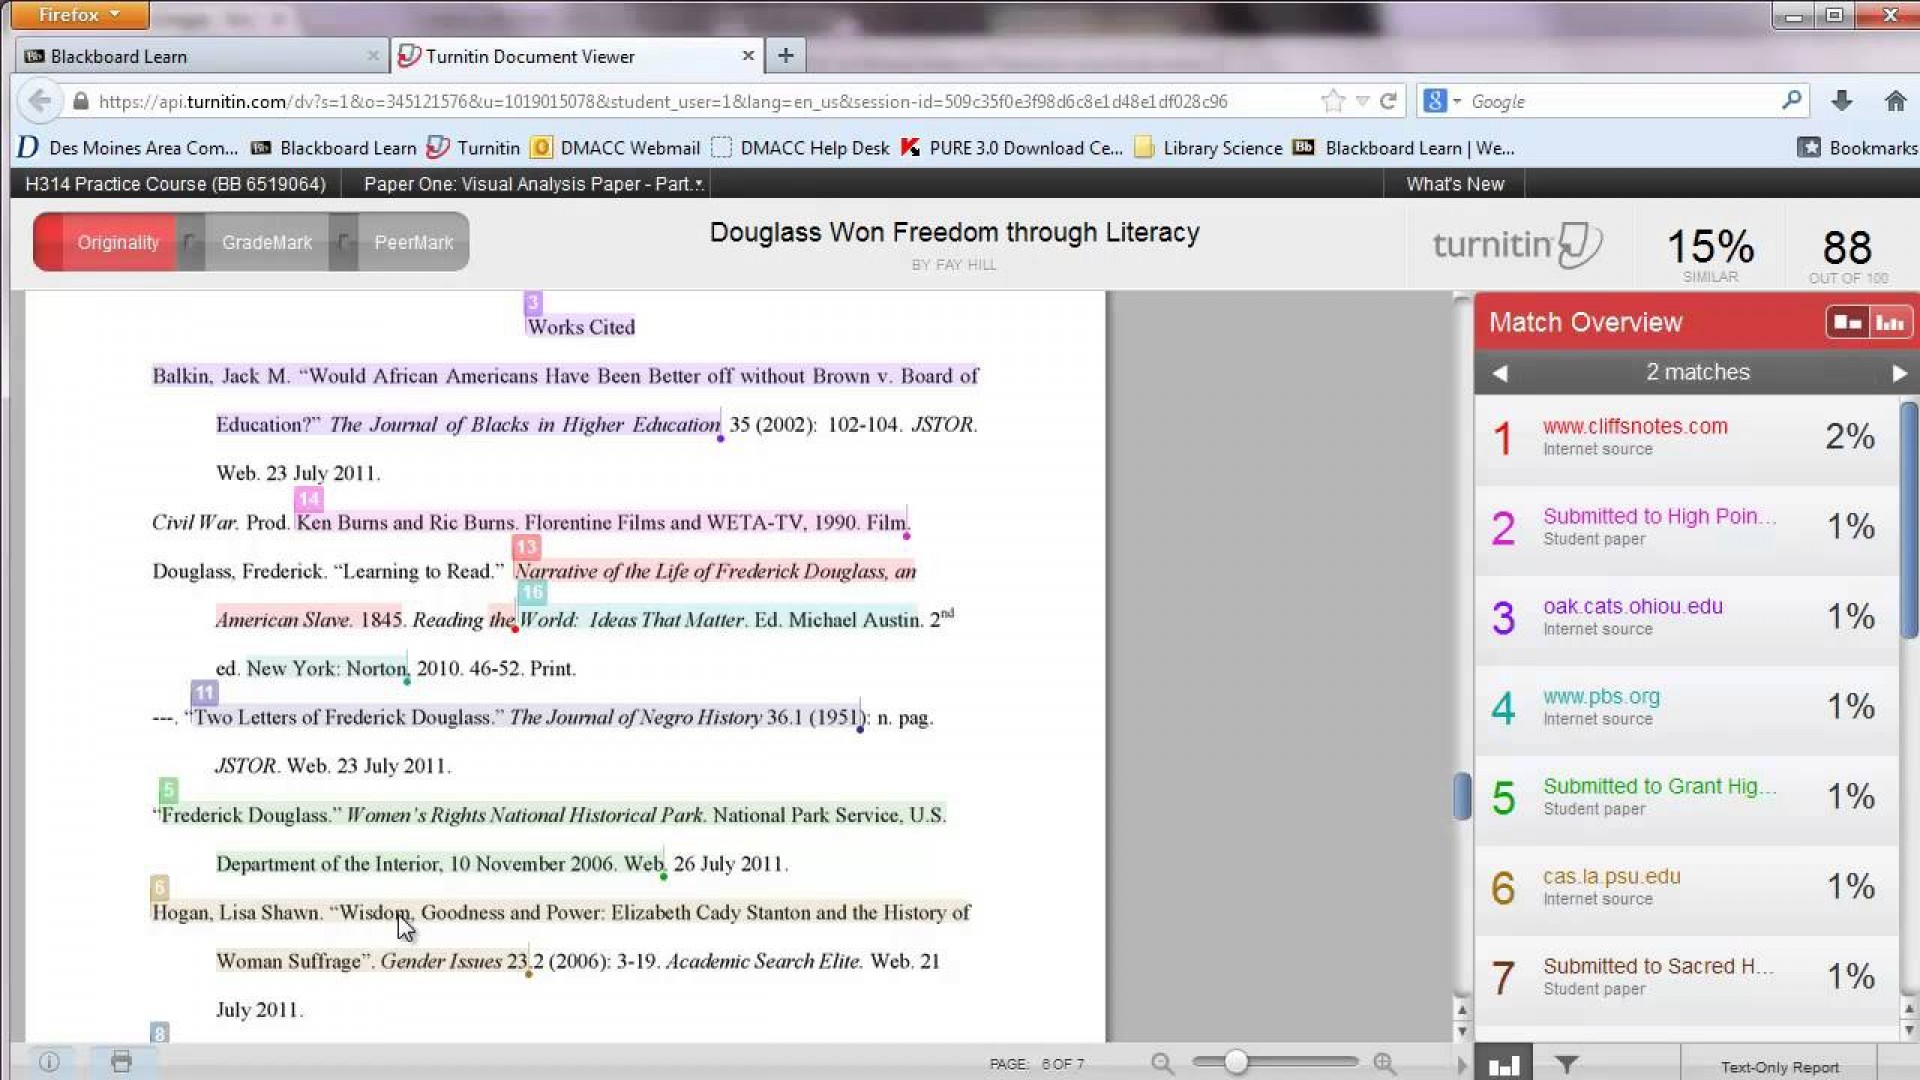 009 Check Plagiarism Of Research Paper Online Free Exceptional How To A Checker For Papers 1920